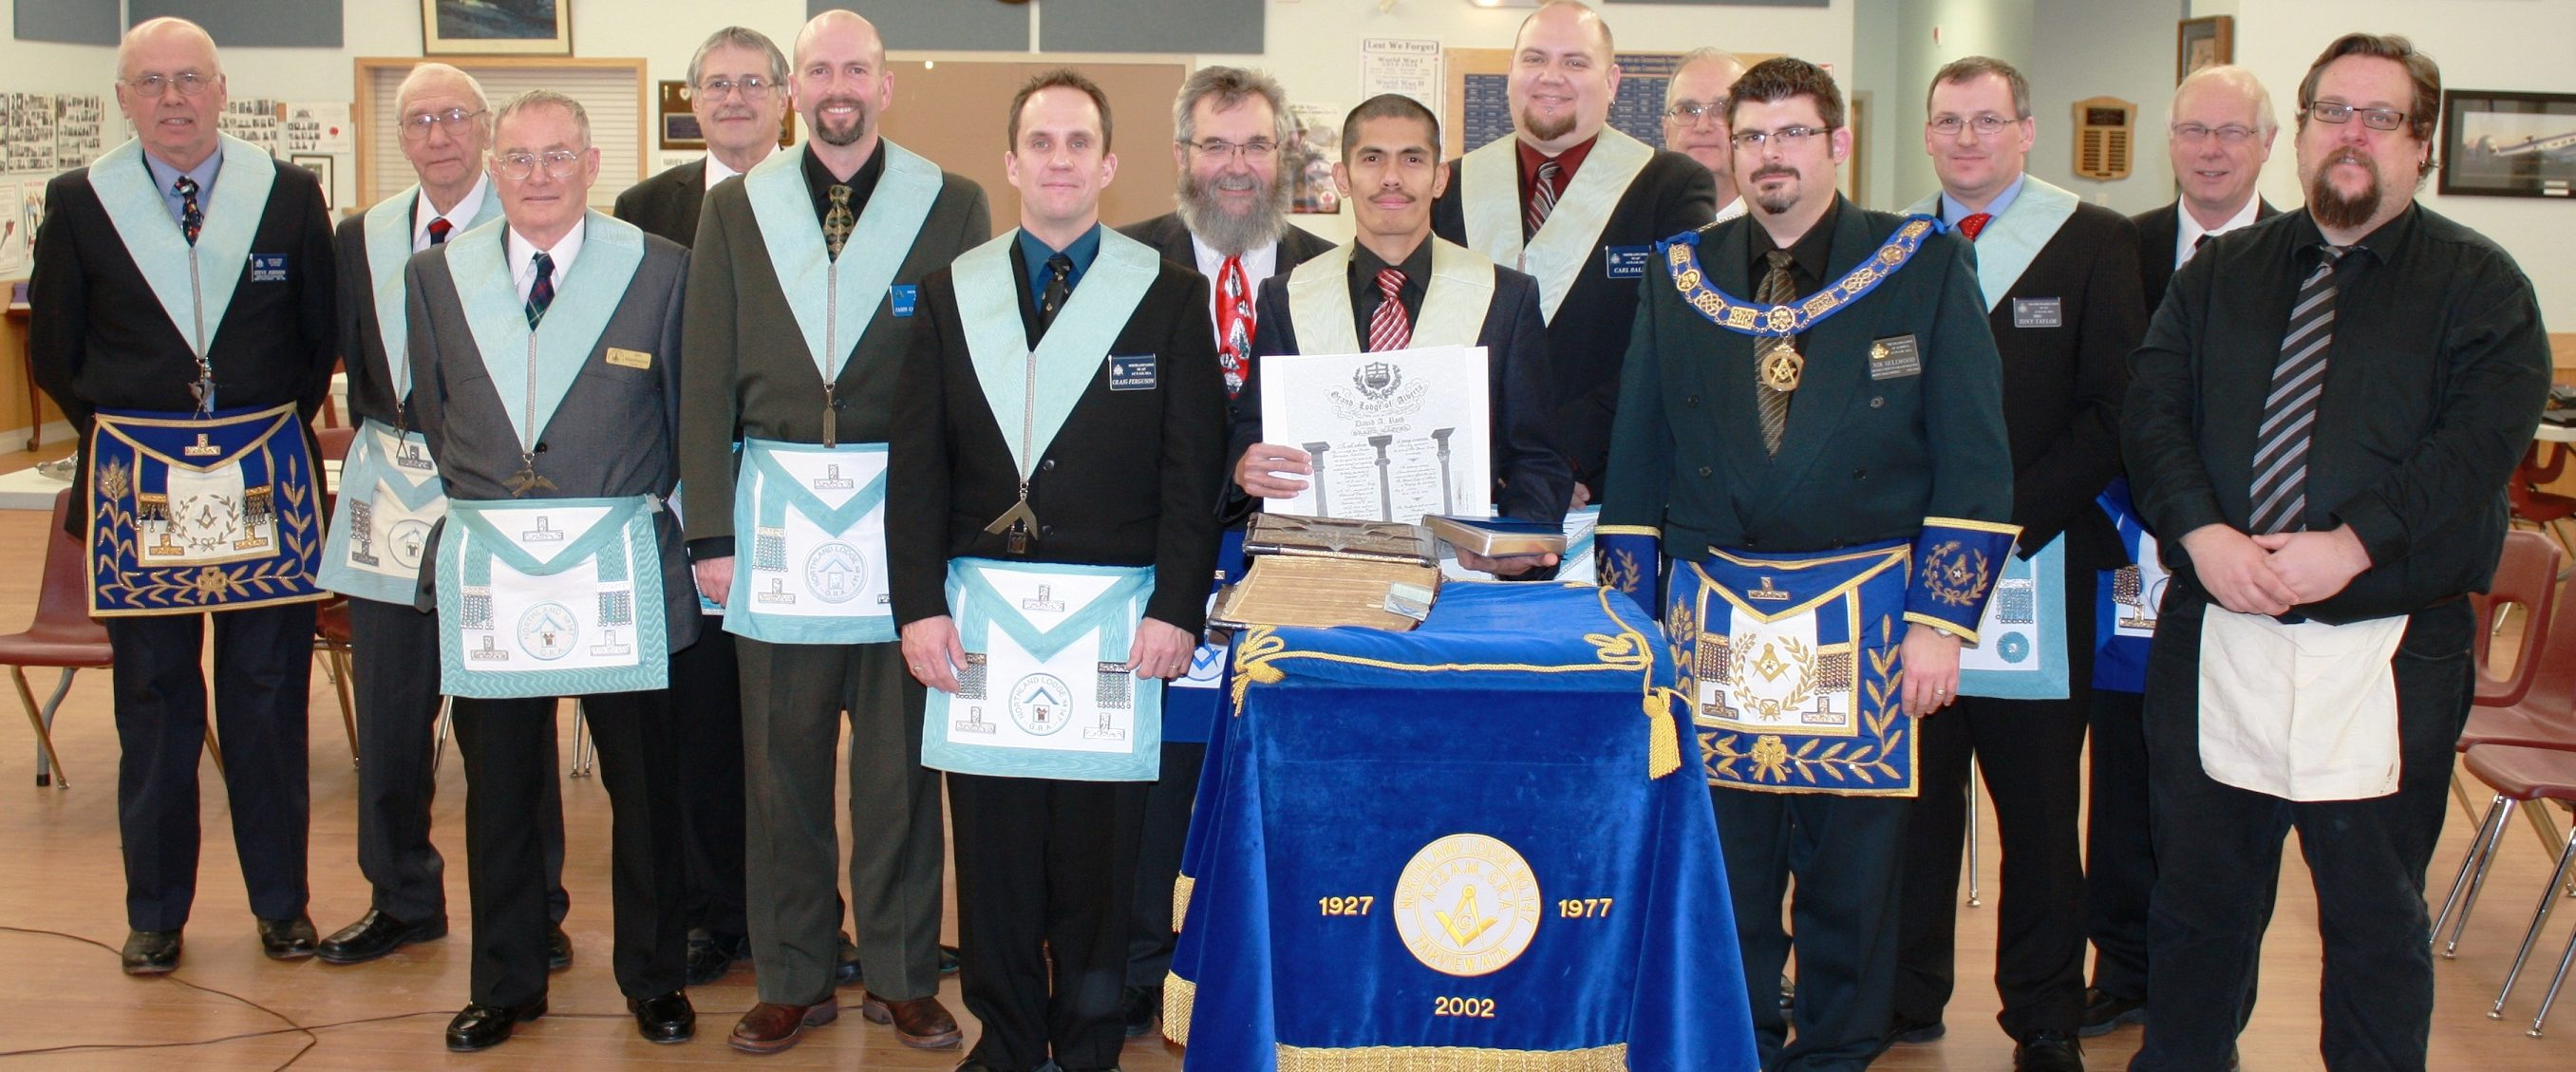 Northland Lodge #147